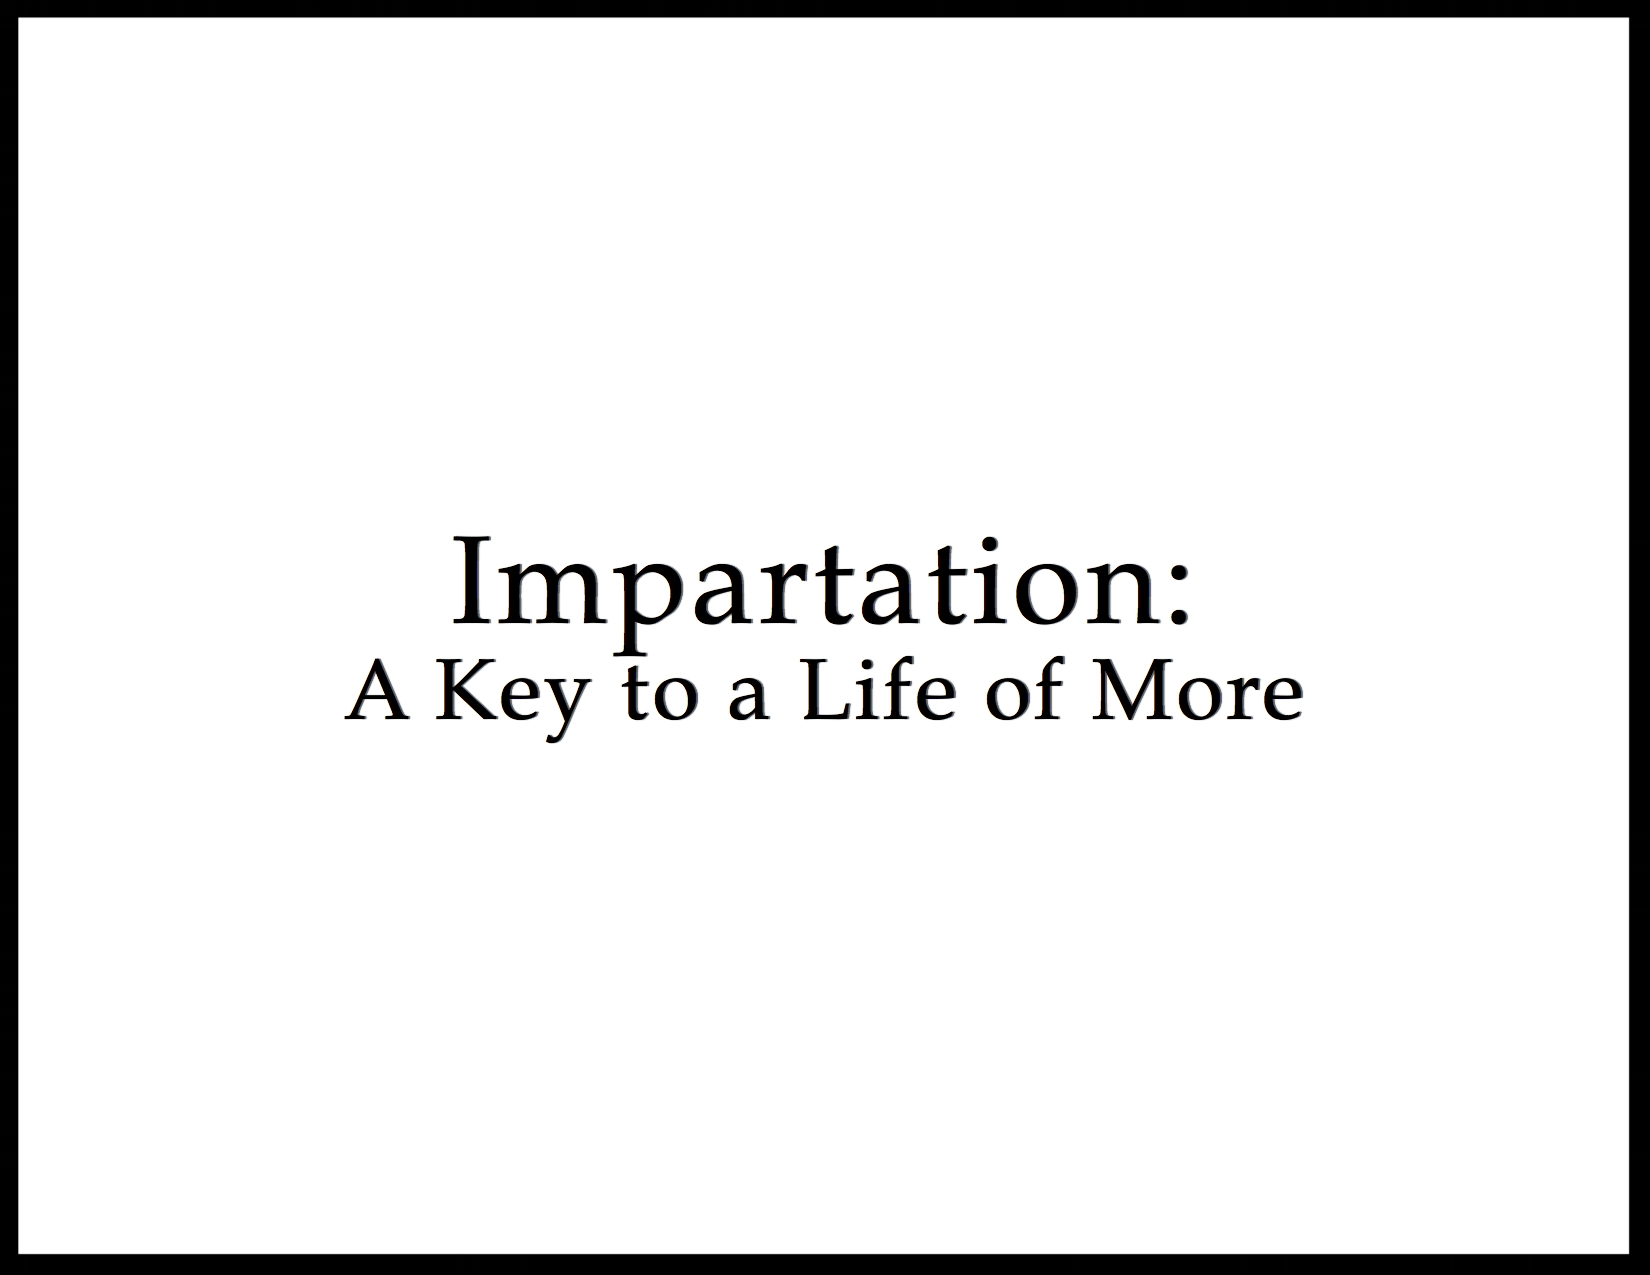 impartation- a key to a life of more rect.jpg